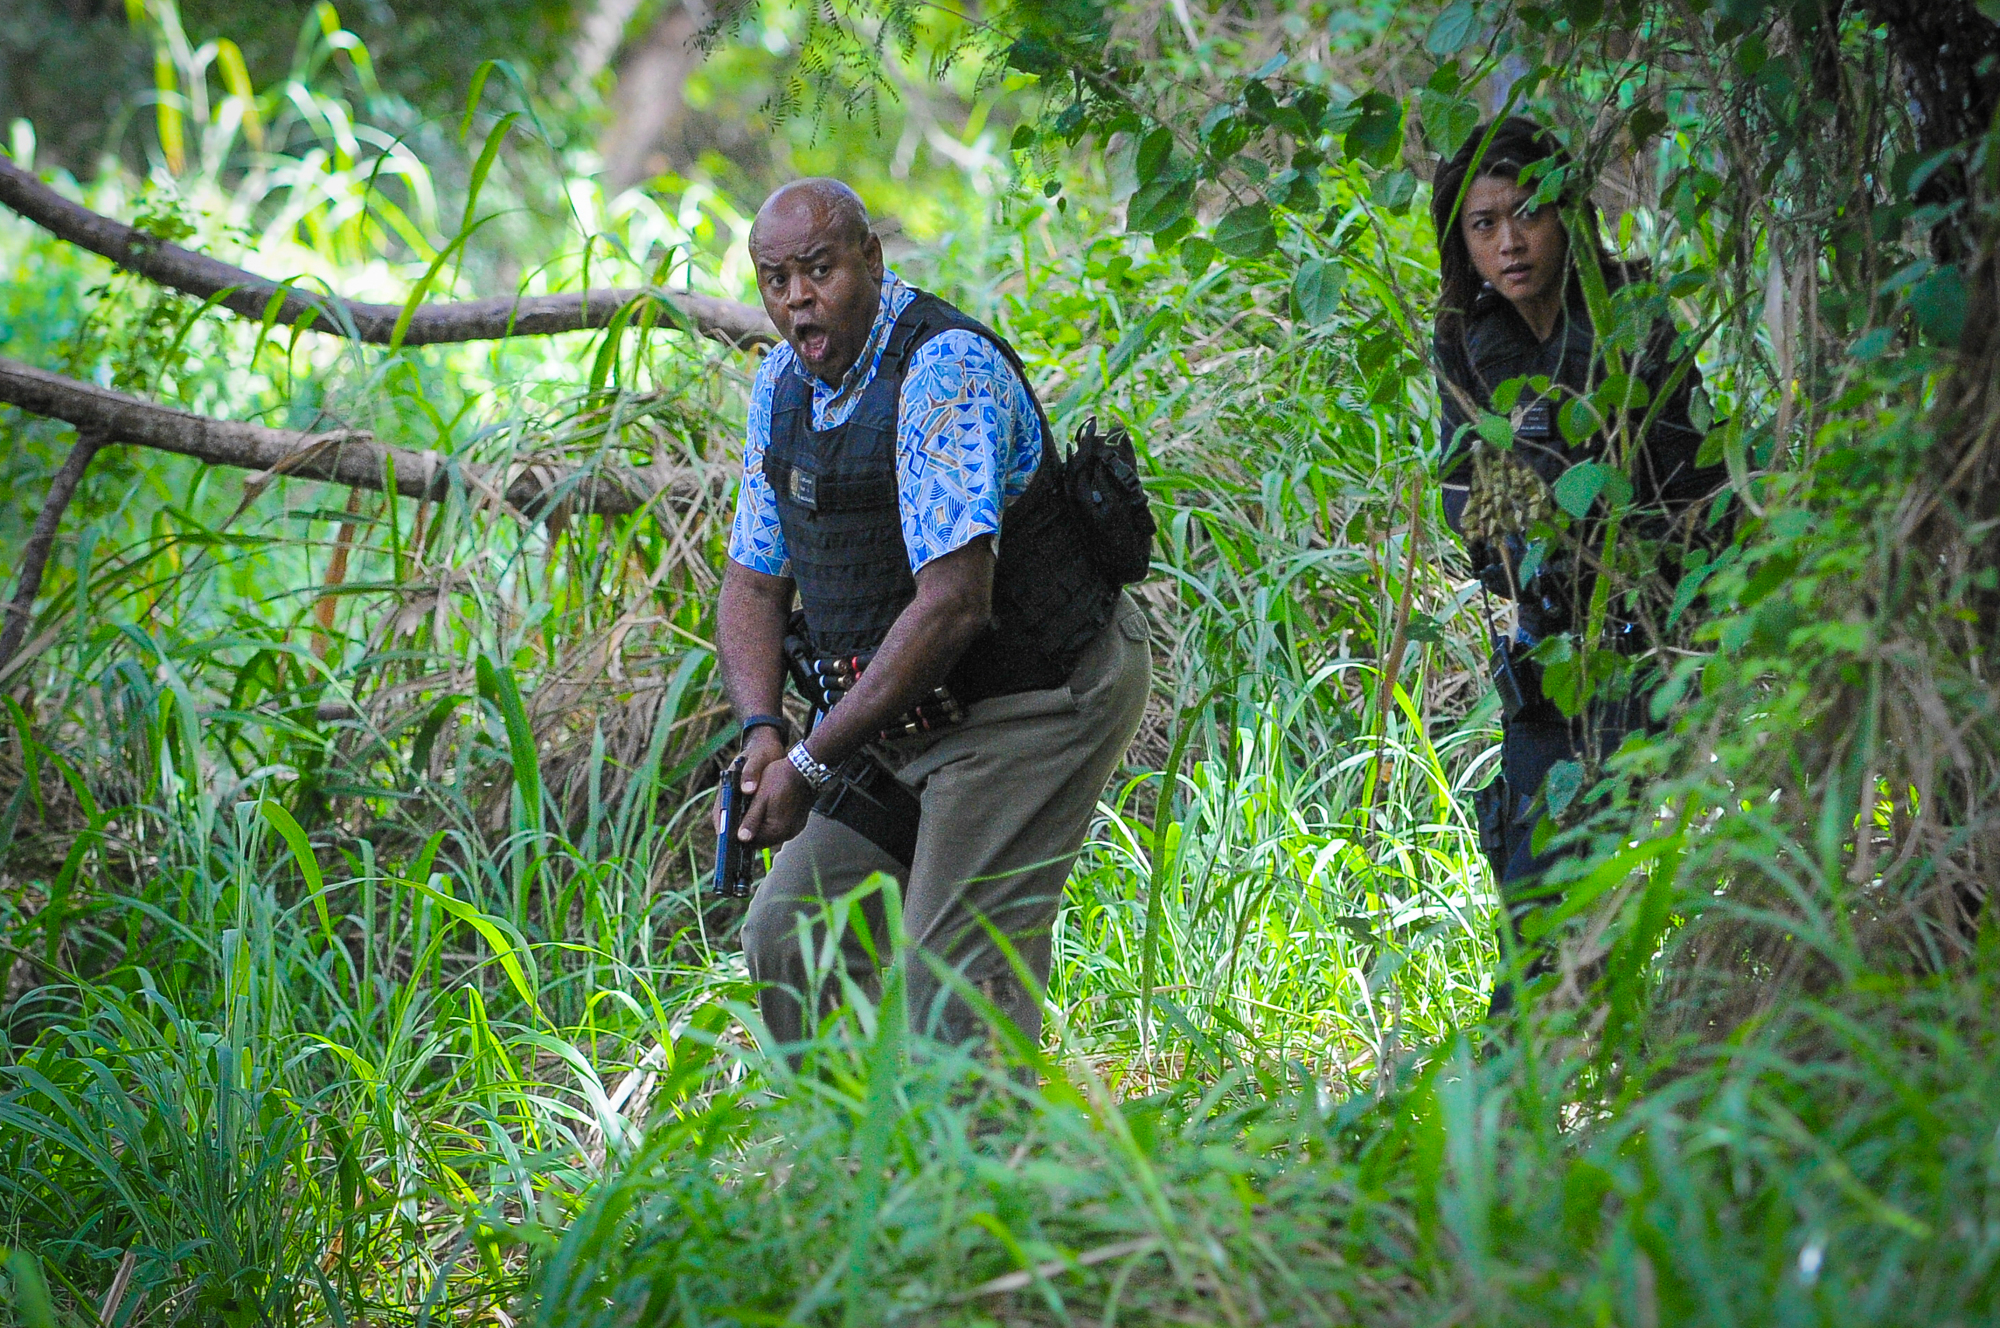 Chi McBride as Lou Grover and Grace Park as Kono Kalakaua